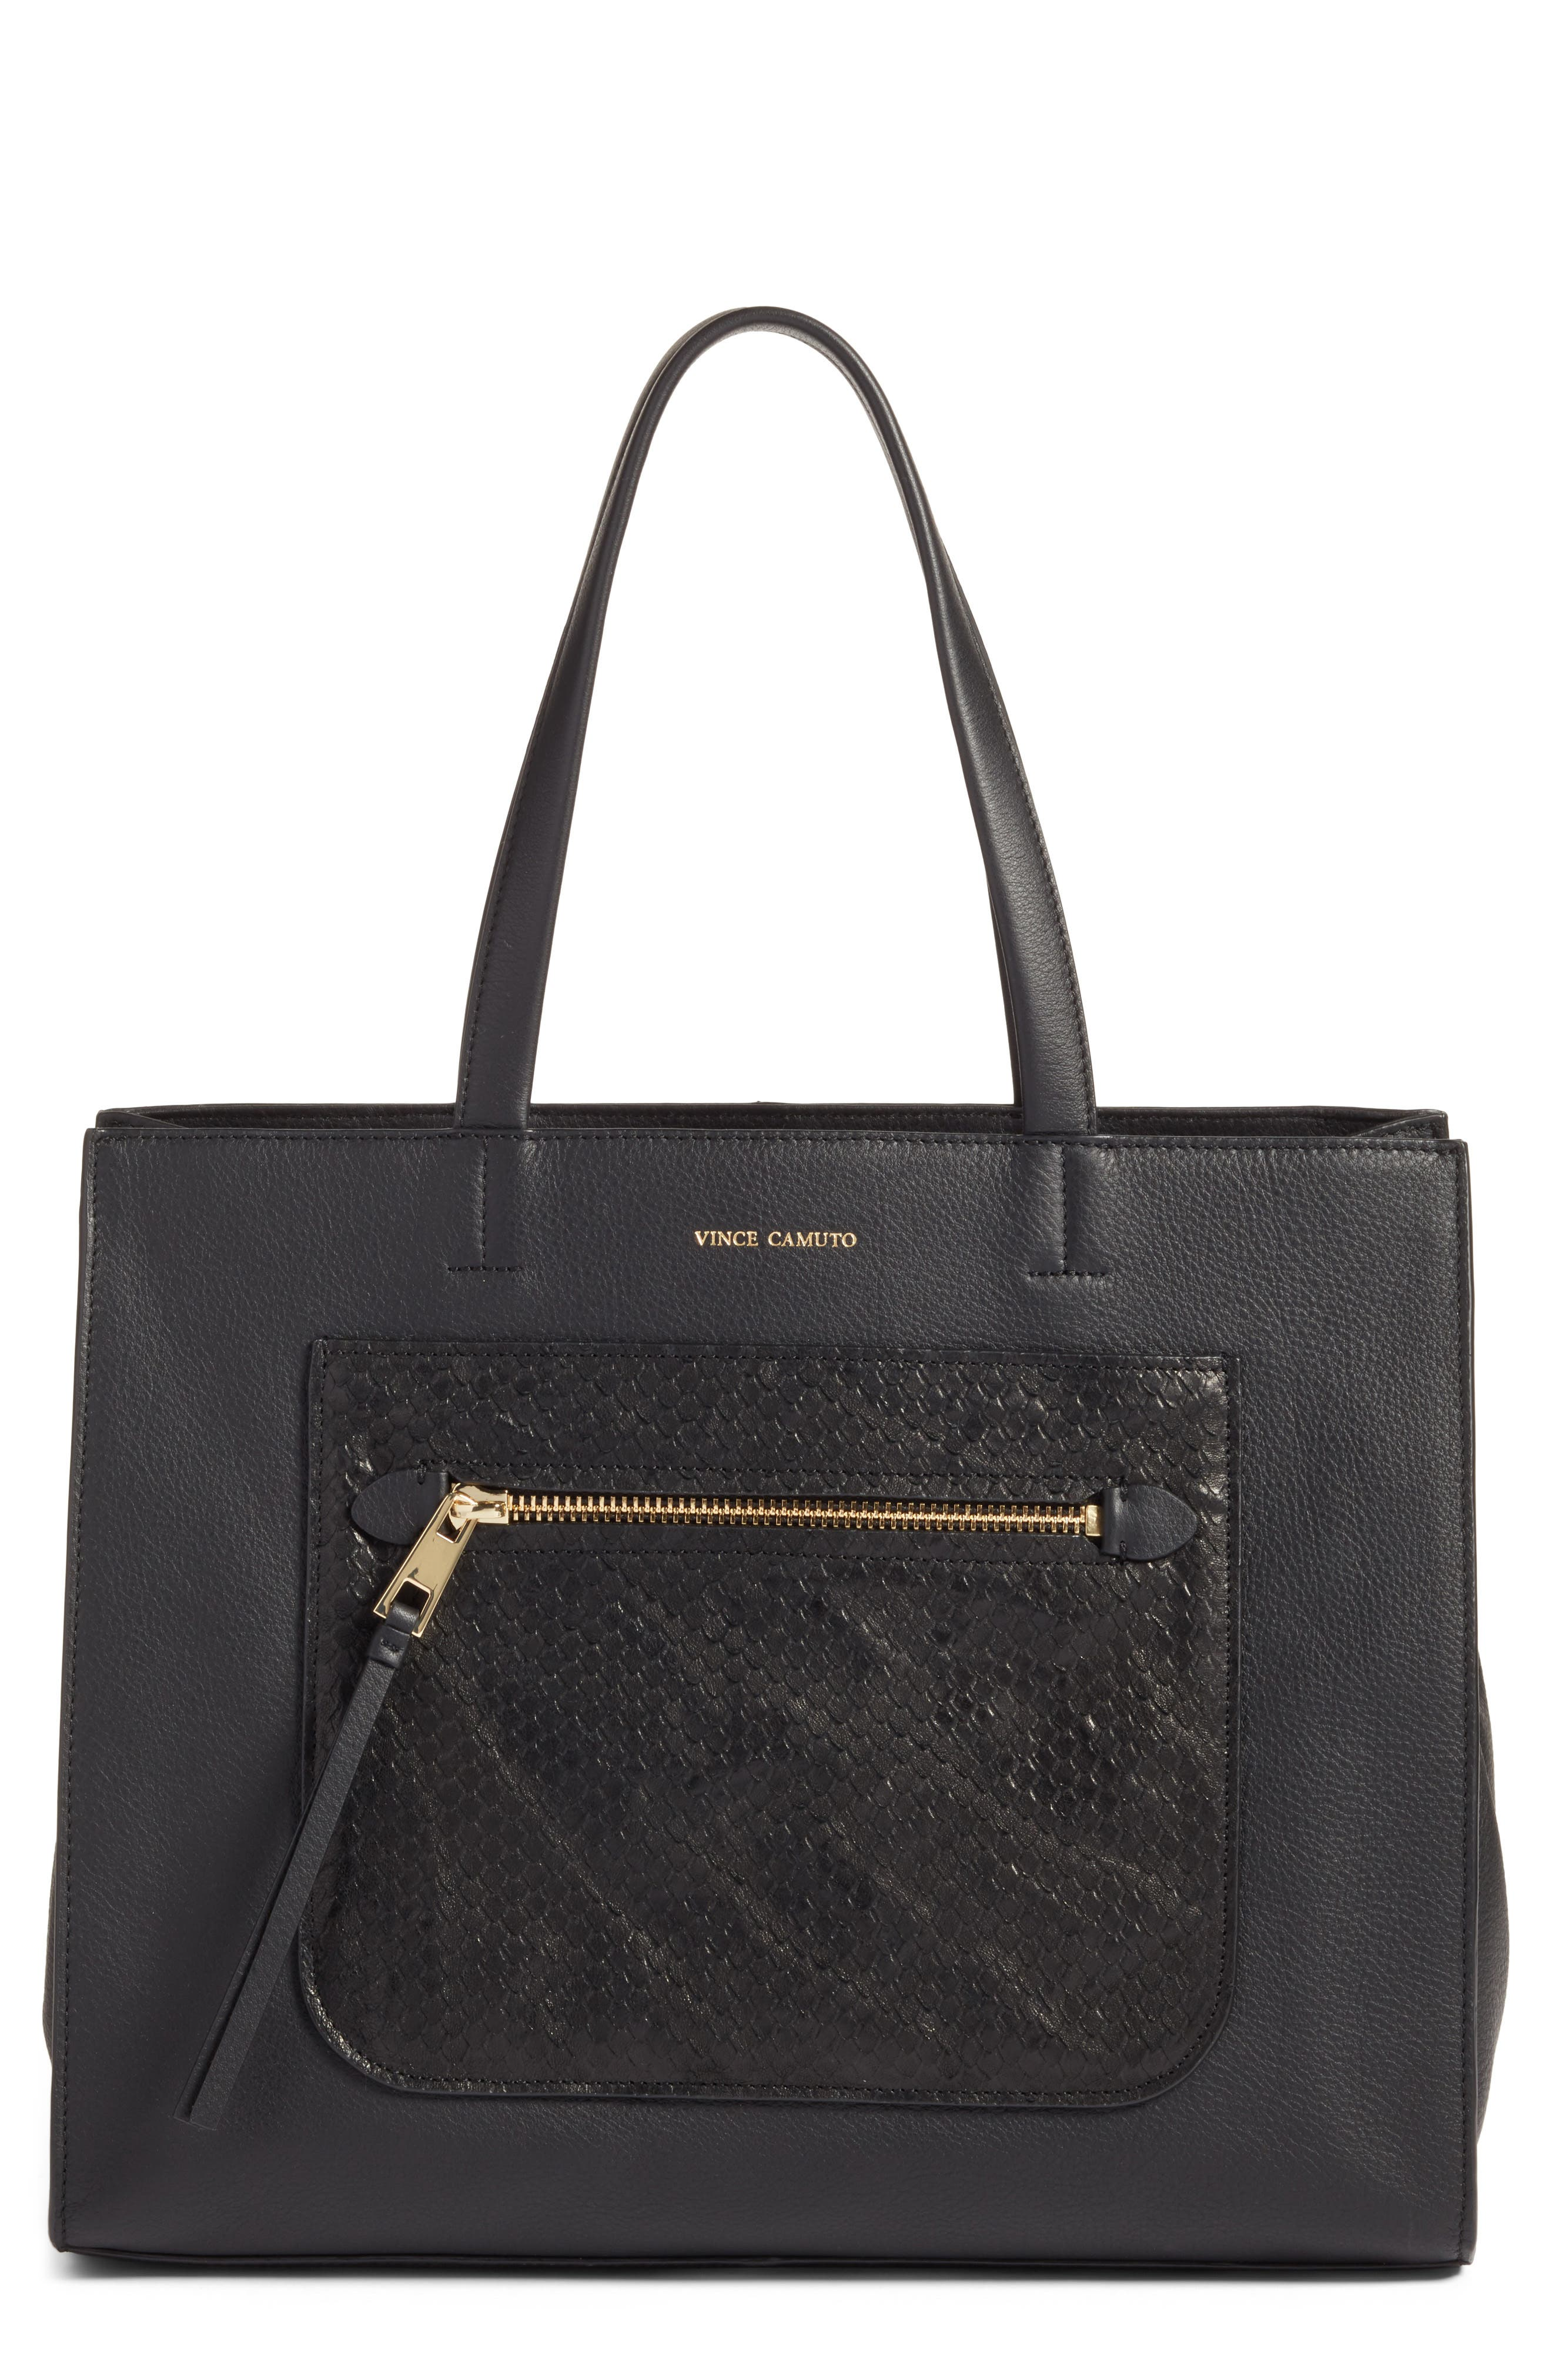 VINCE CAMUTO,                             Elvan Leather Tote,                             Main thumbnail 1, color,                             001